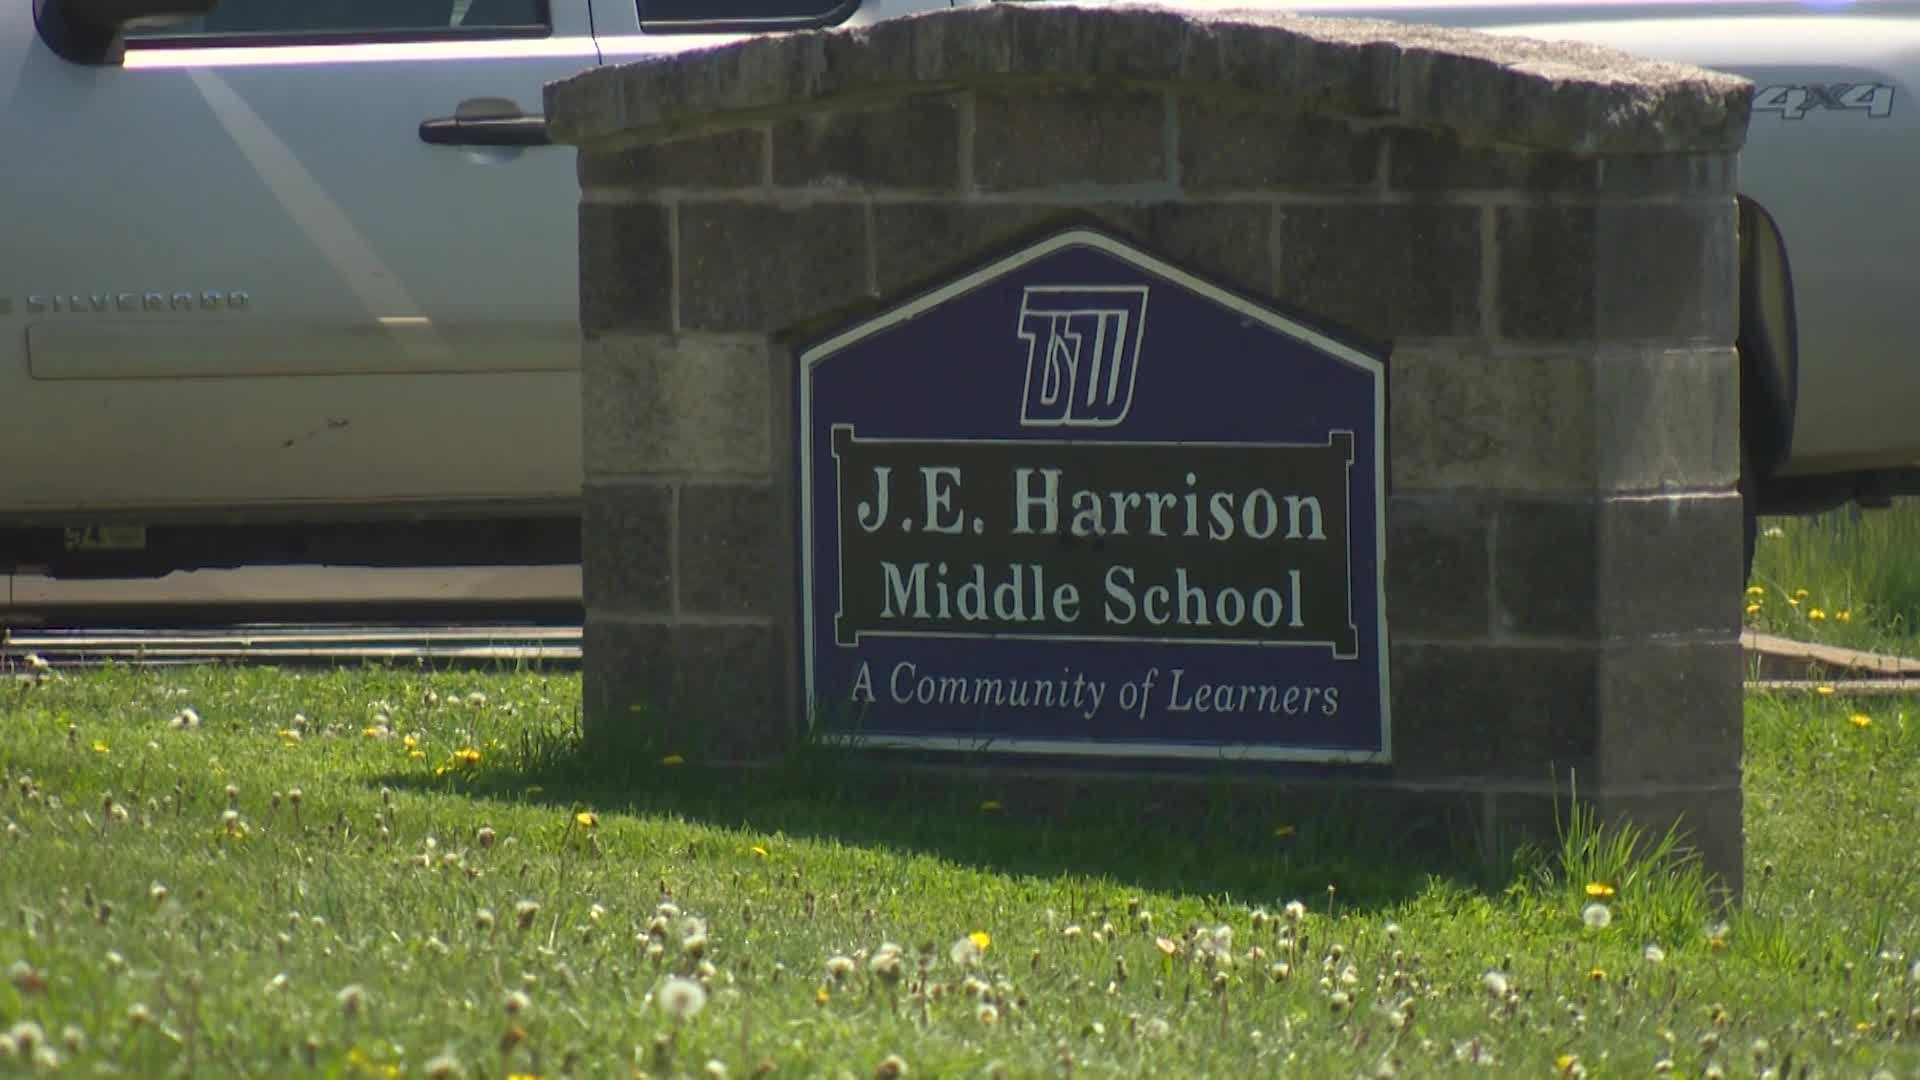 J.E. Harrison Middle School